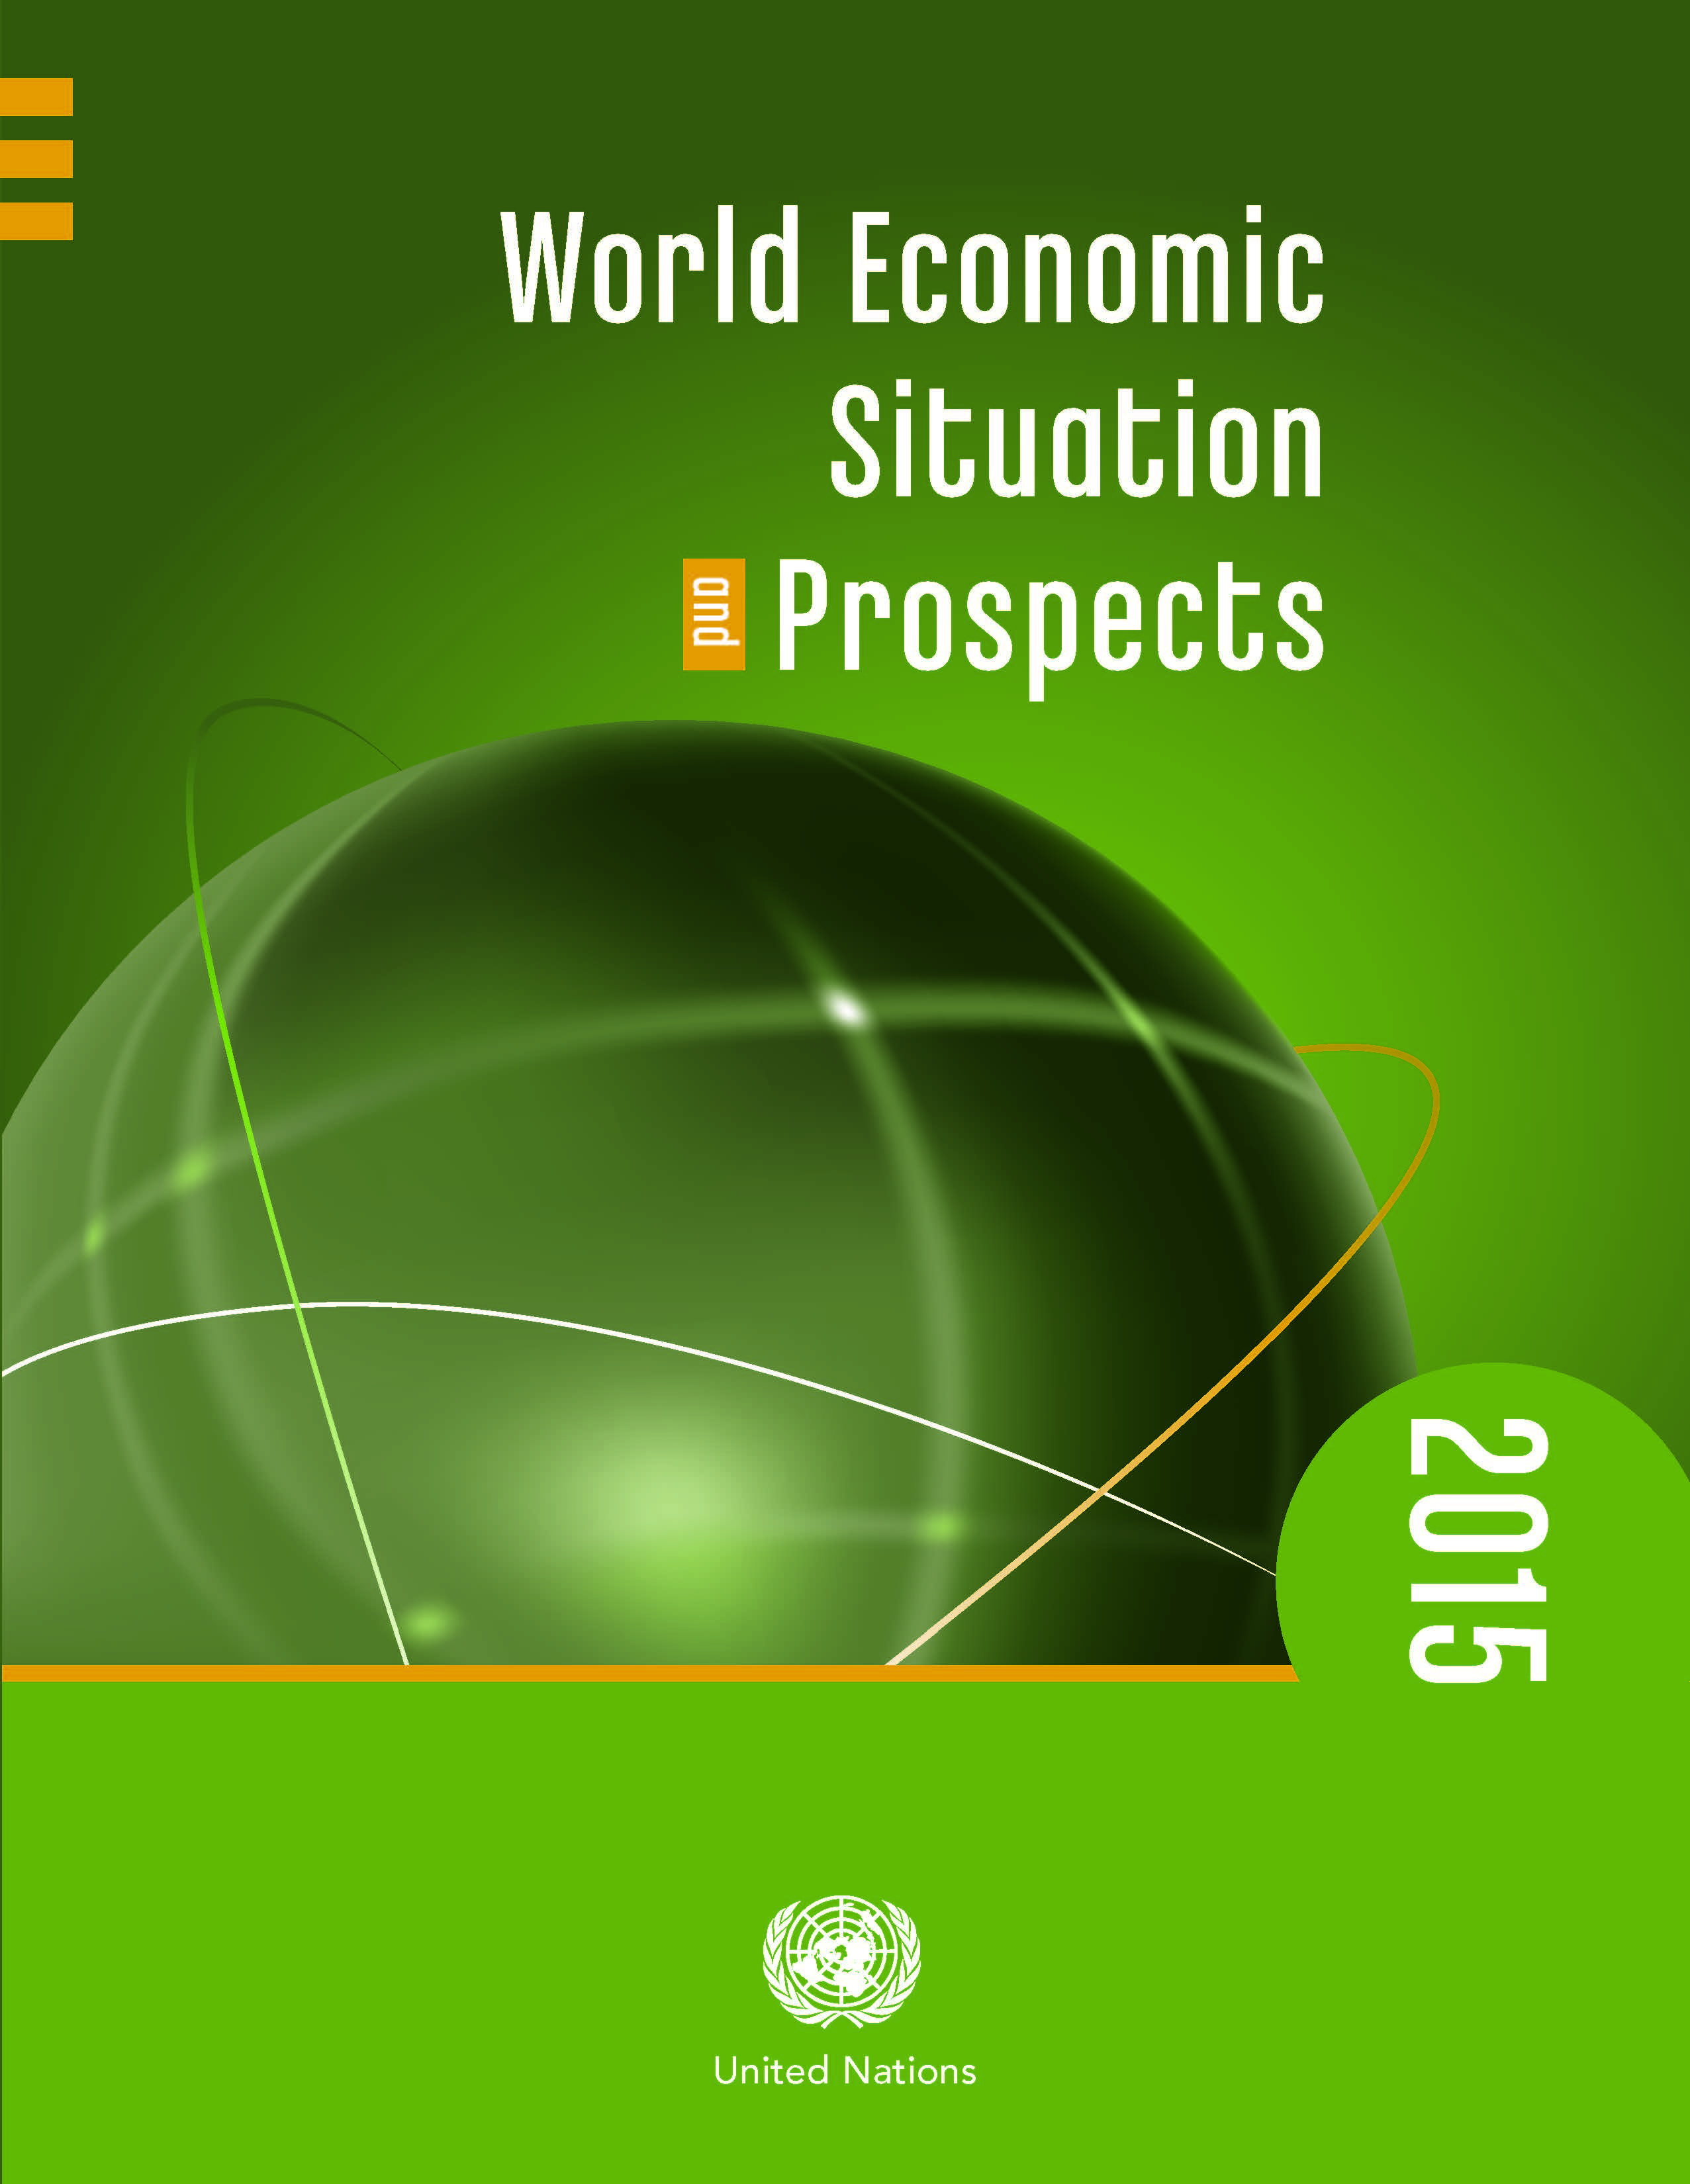 WORLD ECON SITUAT PROSPECTS 2015